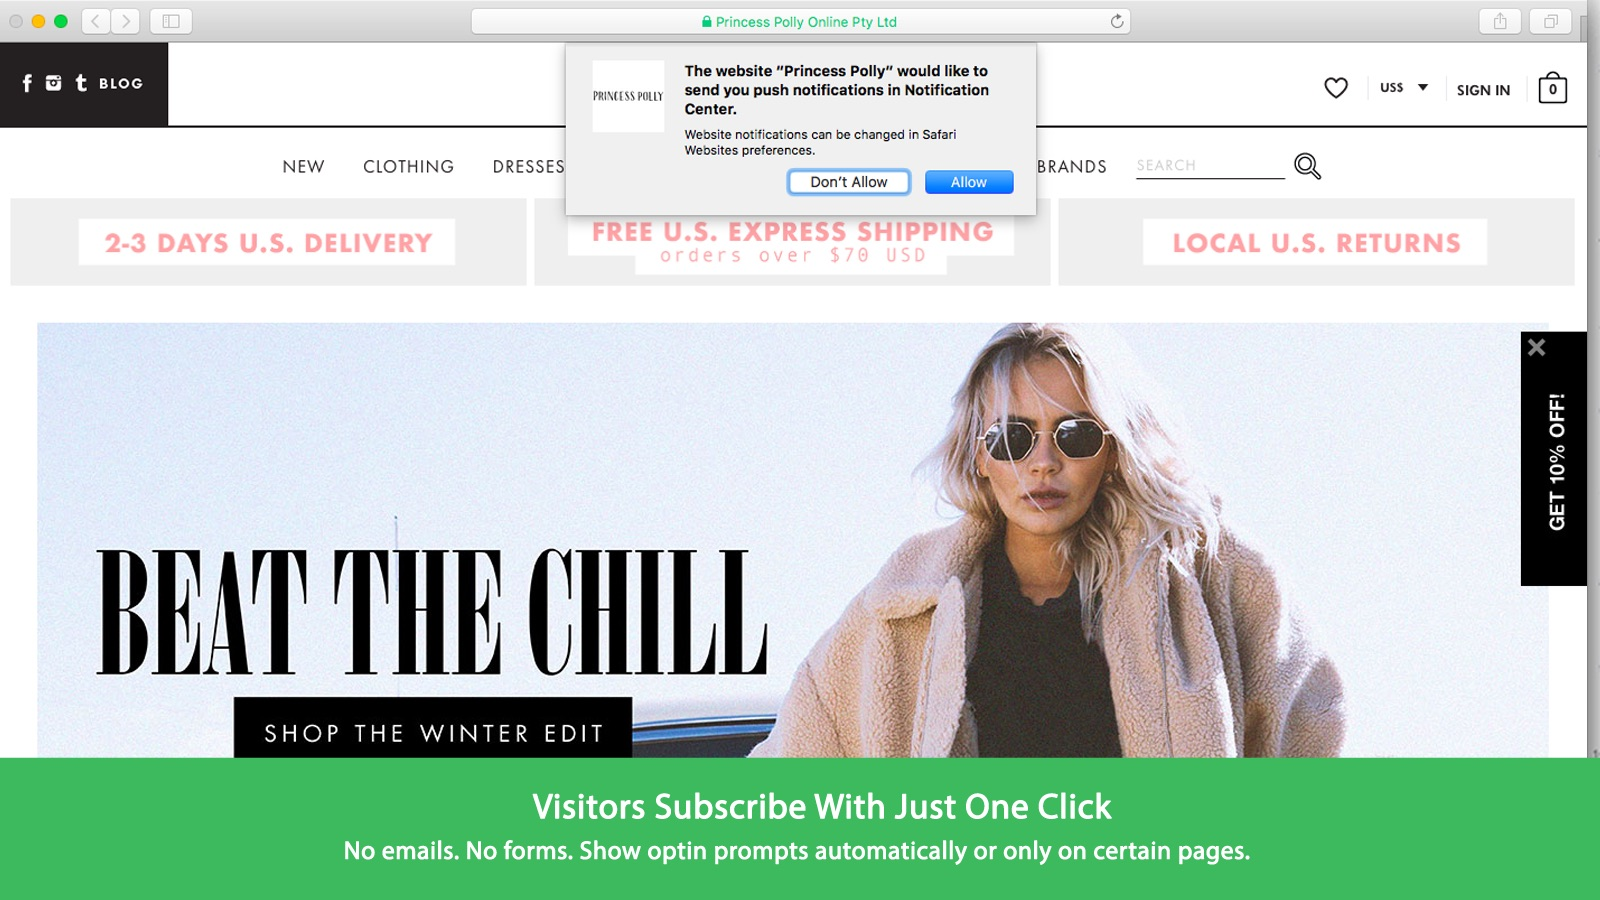 Visitors Subsribe with just One Click